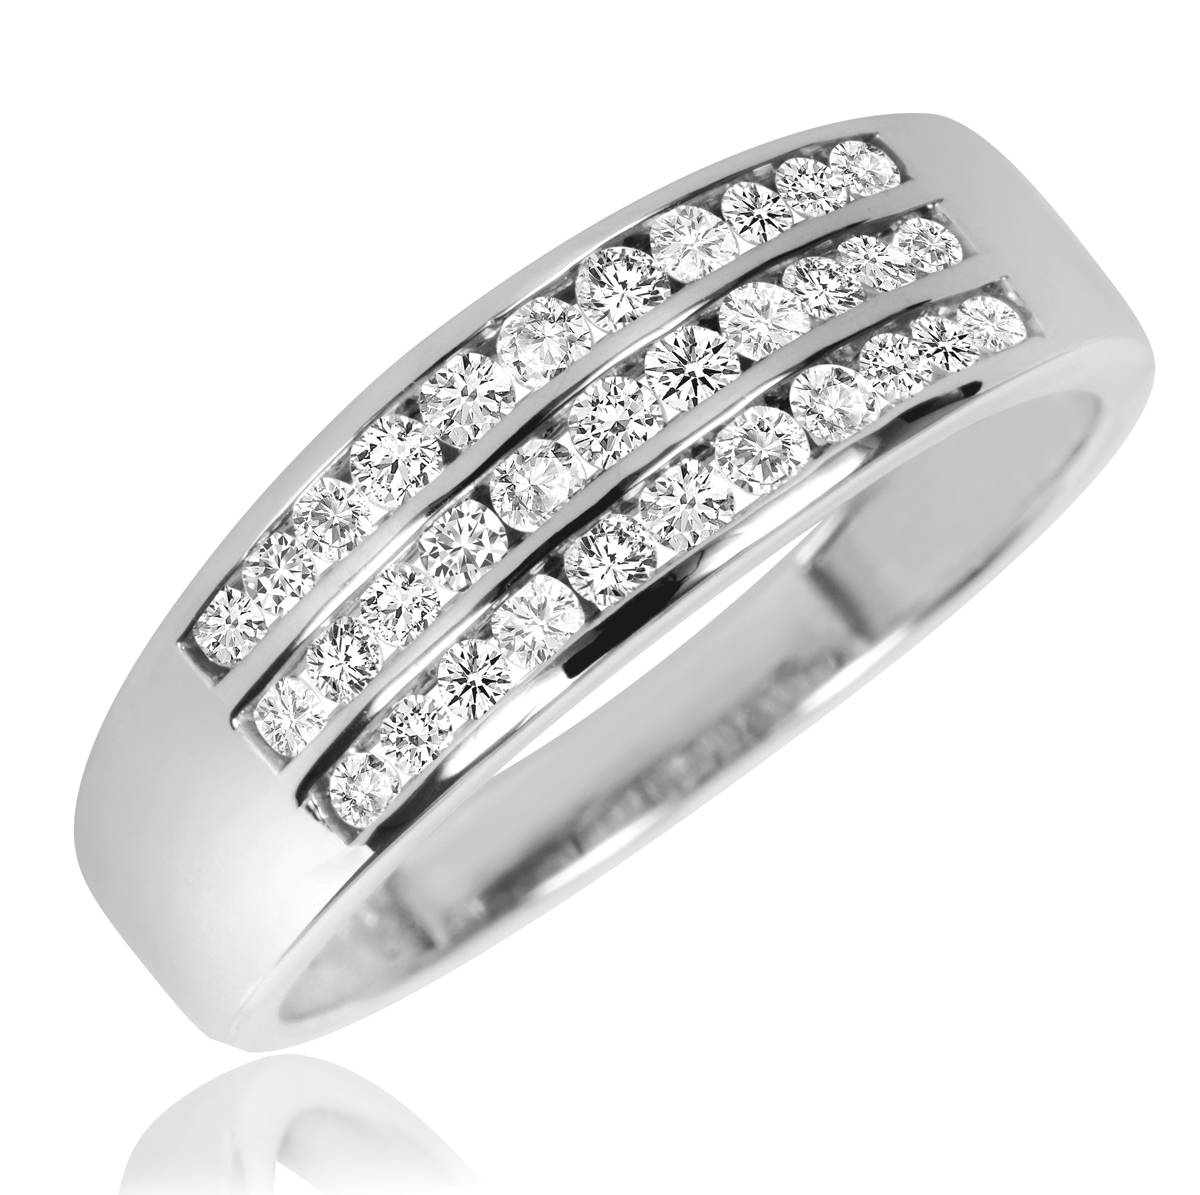 2/3 Carat T.w. Diamond Men's Wedding Band 10K White Gold Intended For Black And White Gold Men's Wedding Bands (Gallery 8 of 15)